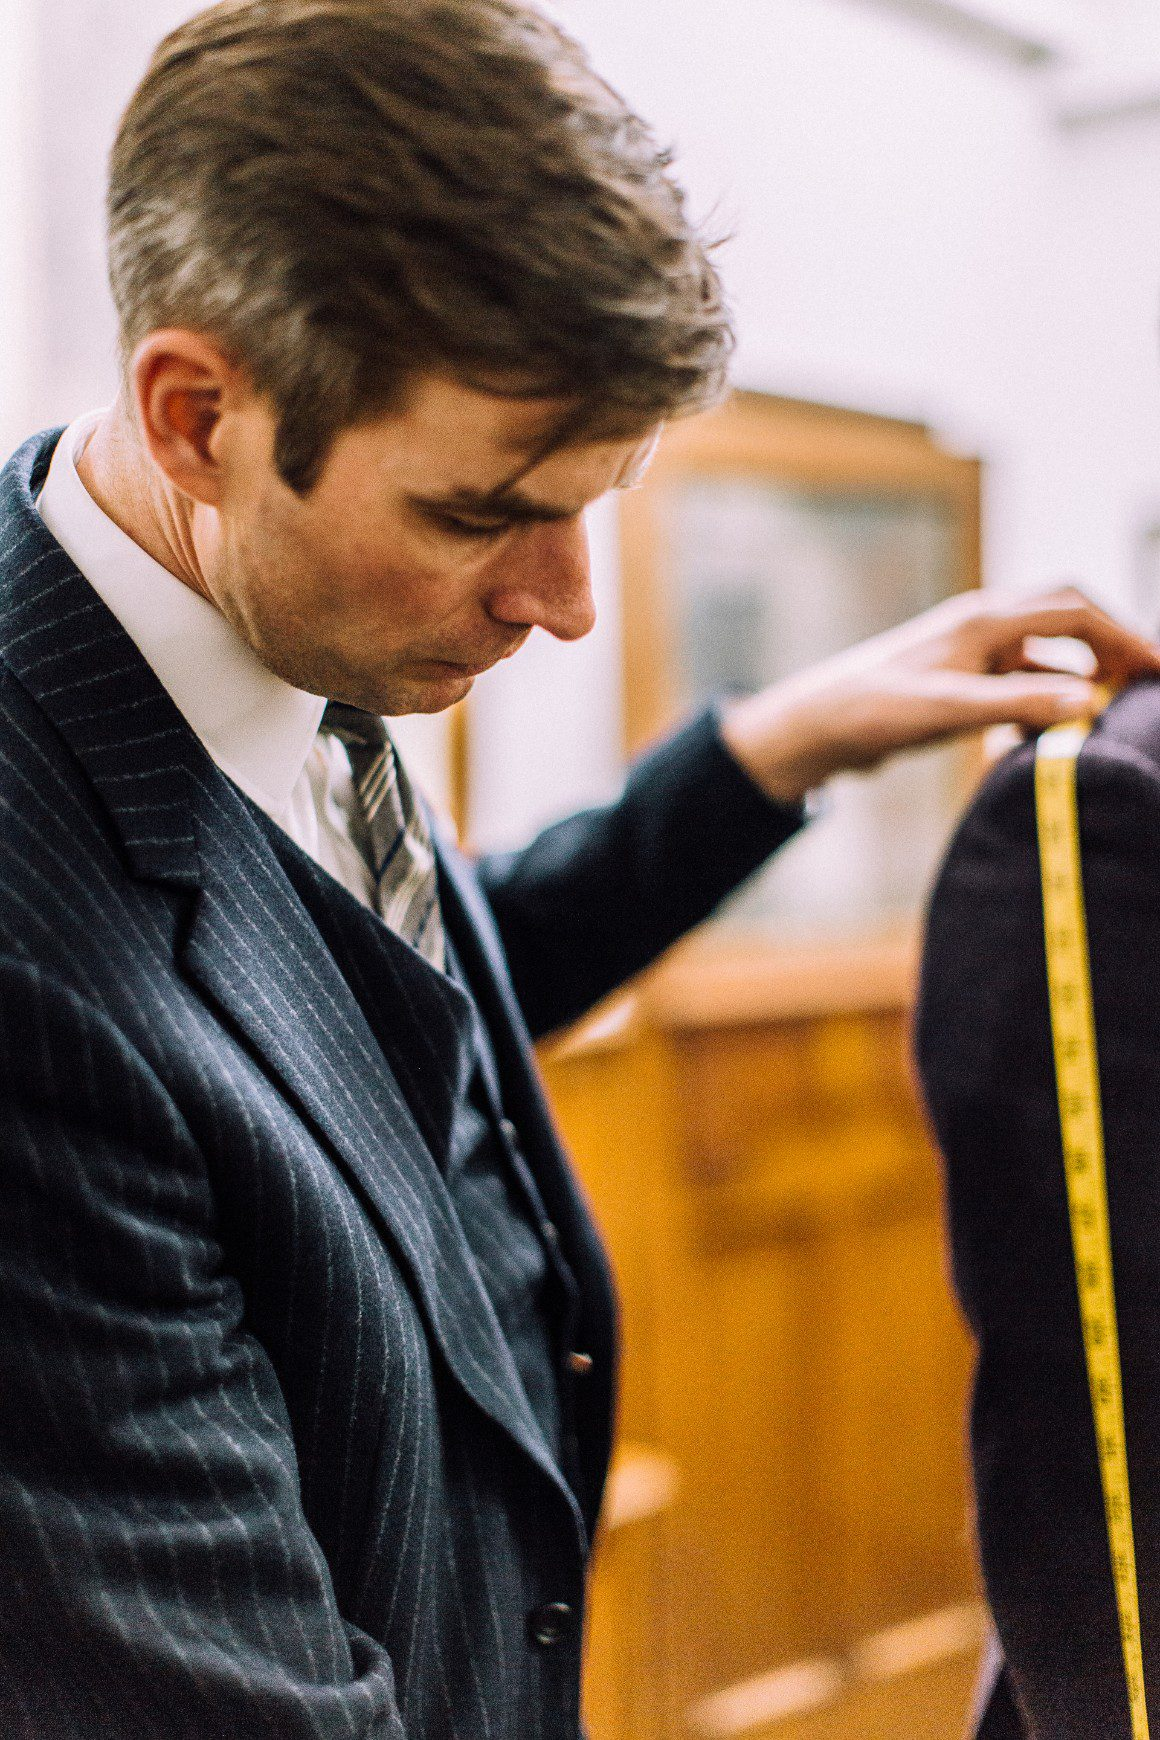 The Best Bespoke Suits Still Represent The Pinnacle of Men's Tailoring